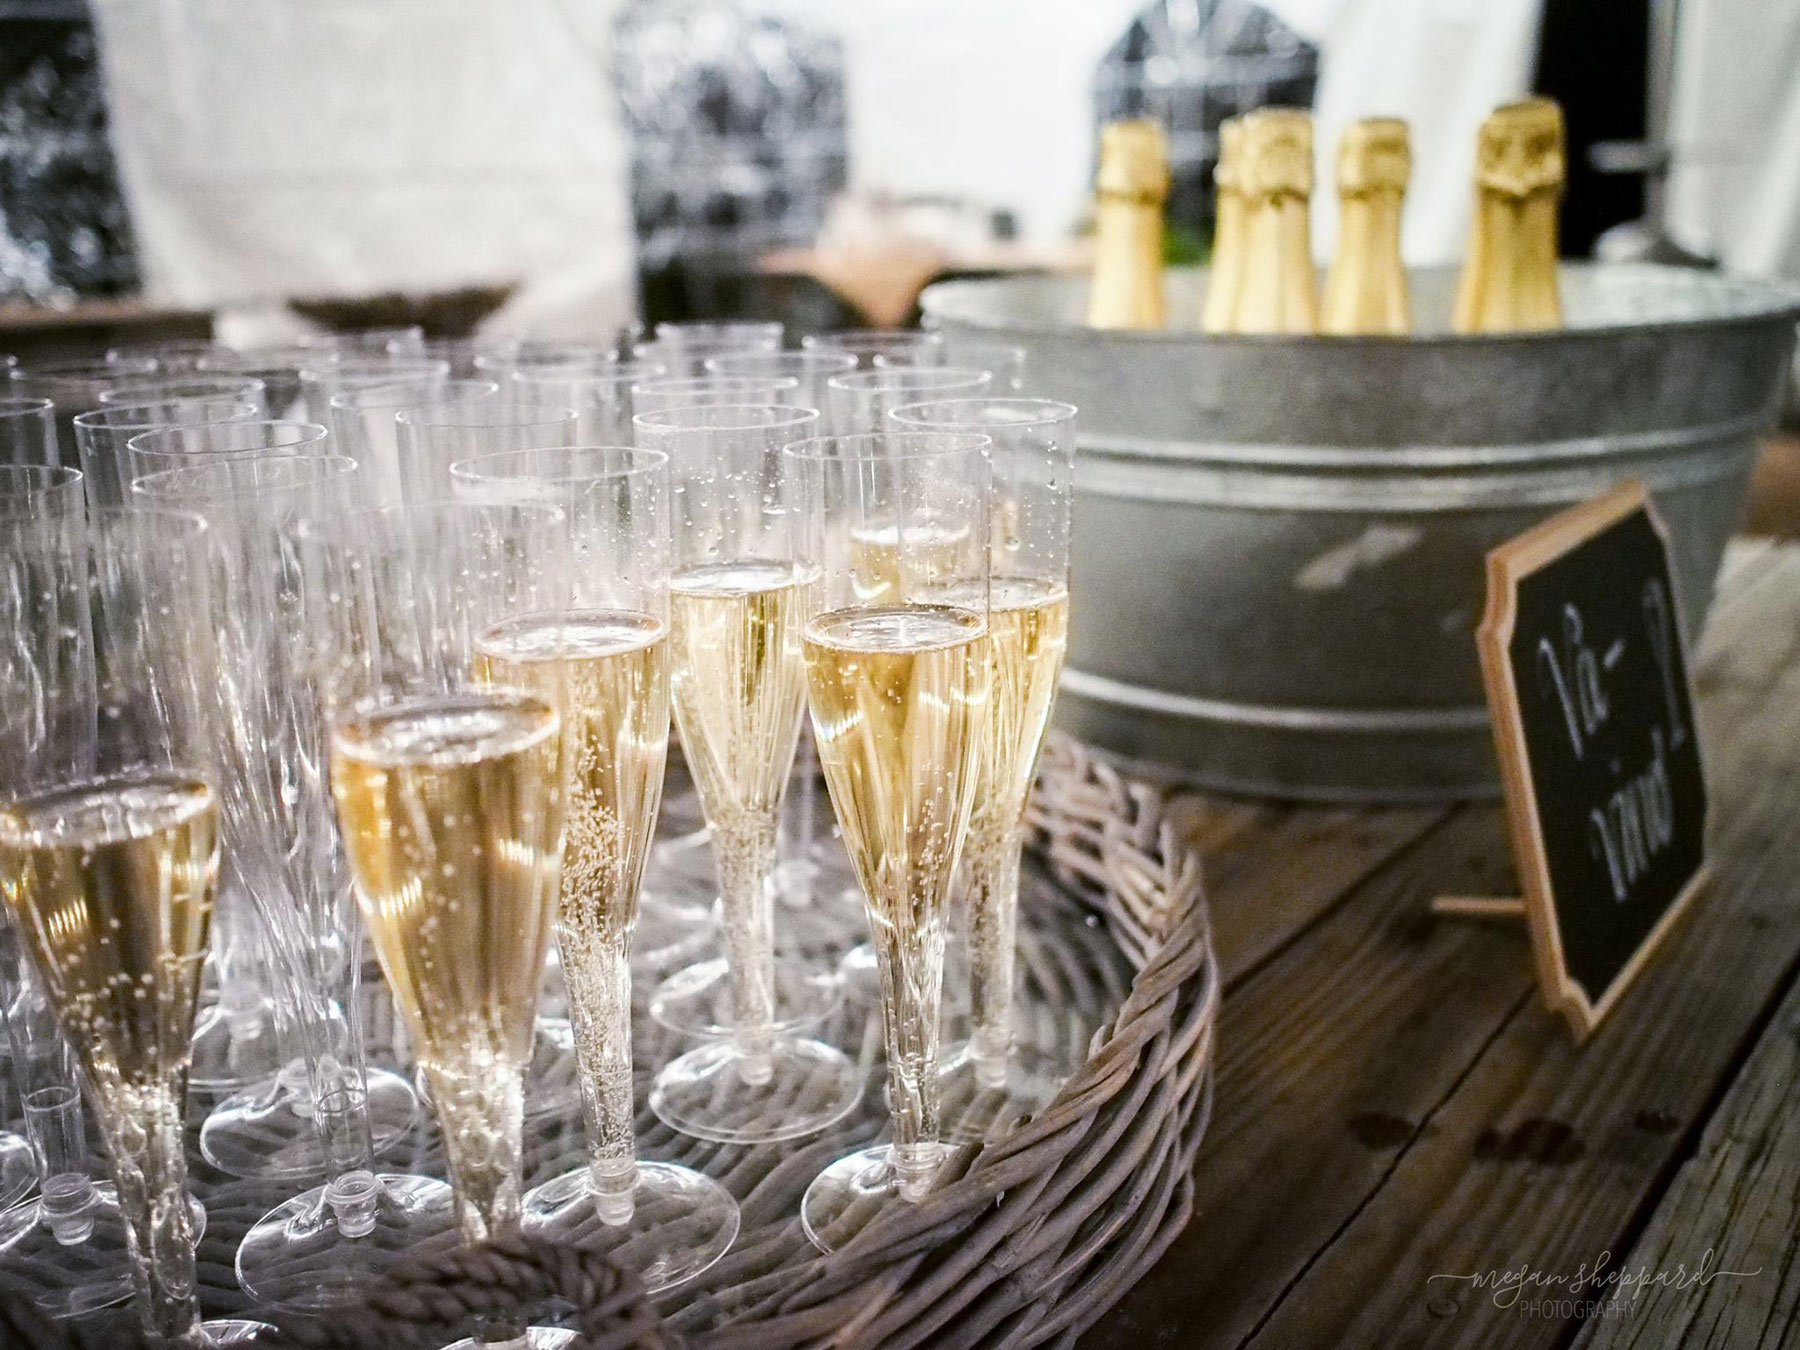 Join Us for Special Events - Live music, winemaker dinners, and other special events